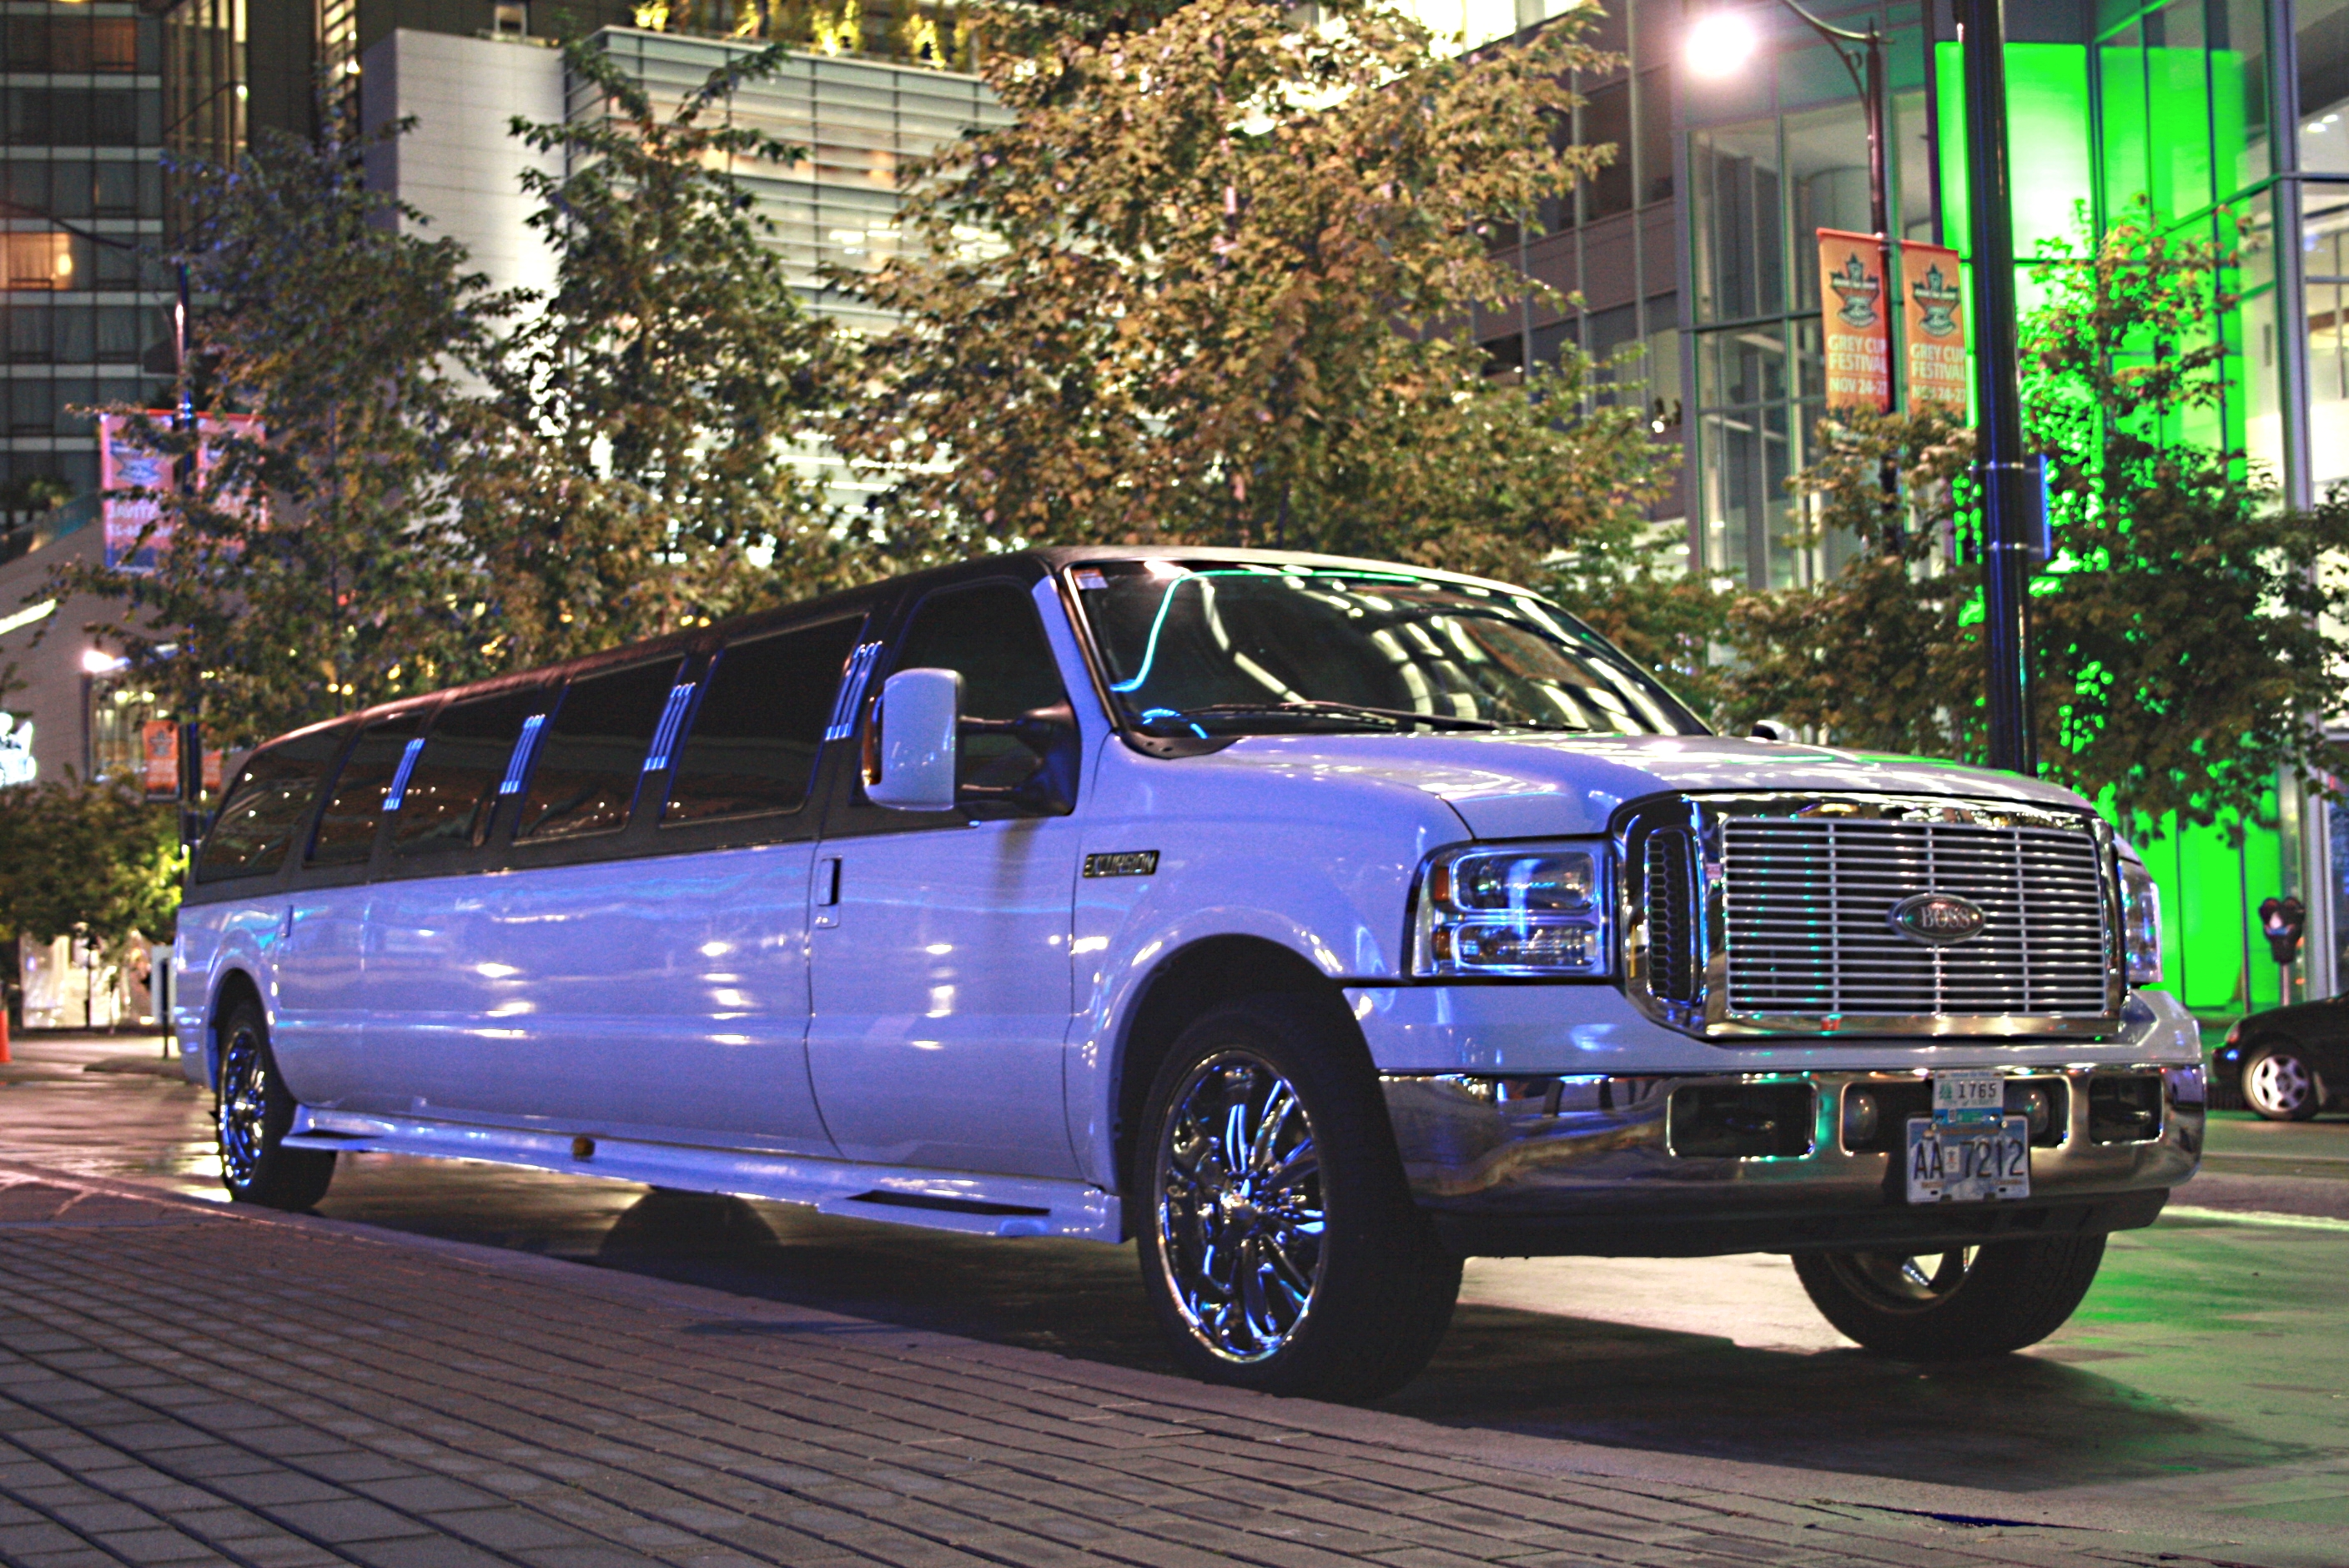 Limousine: Minneapolis Limo Service, Airport Car Service, SUVs, Party